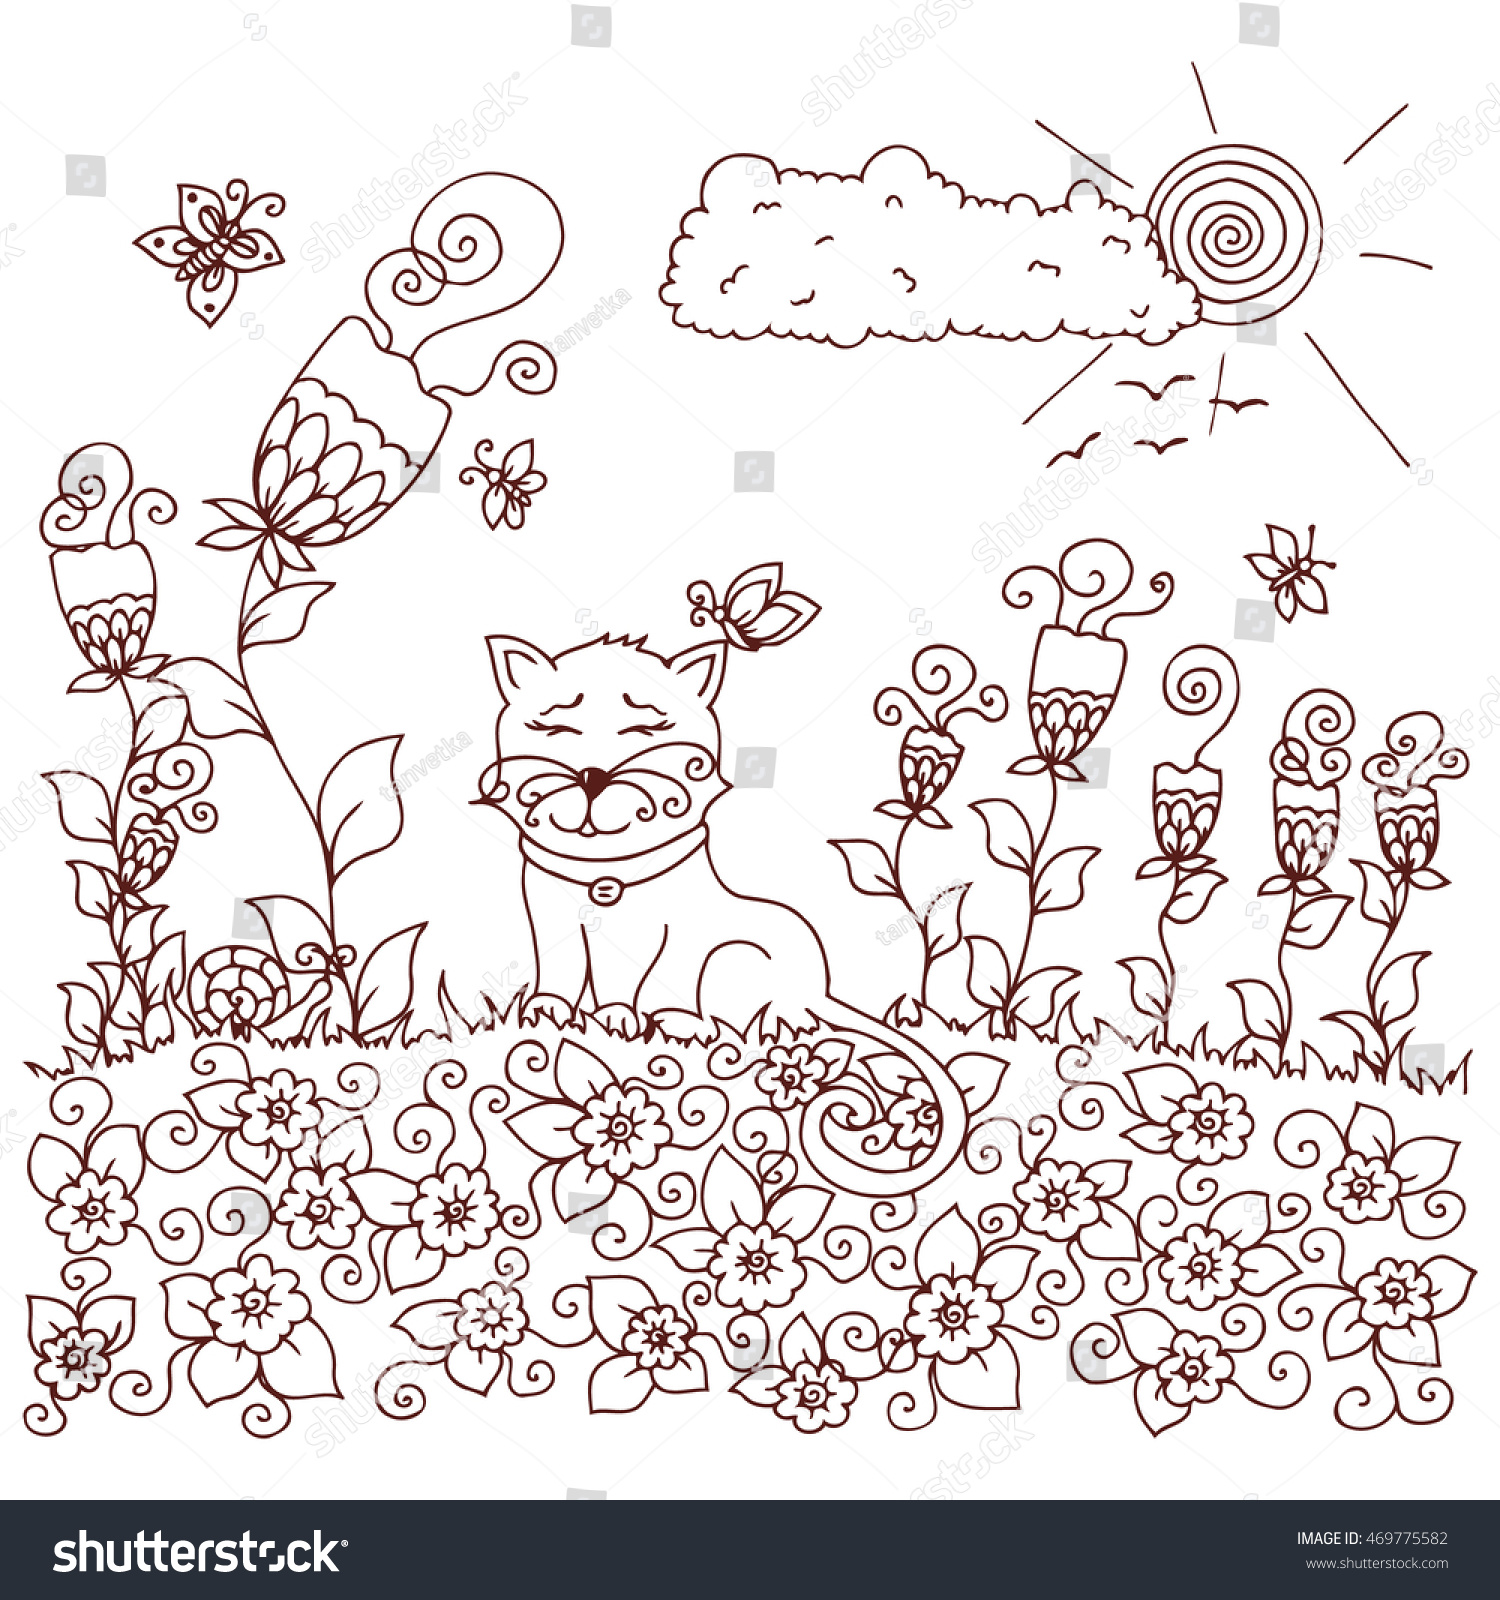 Vector Illustration Zen Tangd Cat Sitting In The Flowers Doodle Drawing Coloring Book